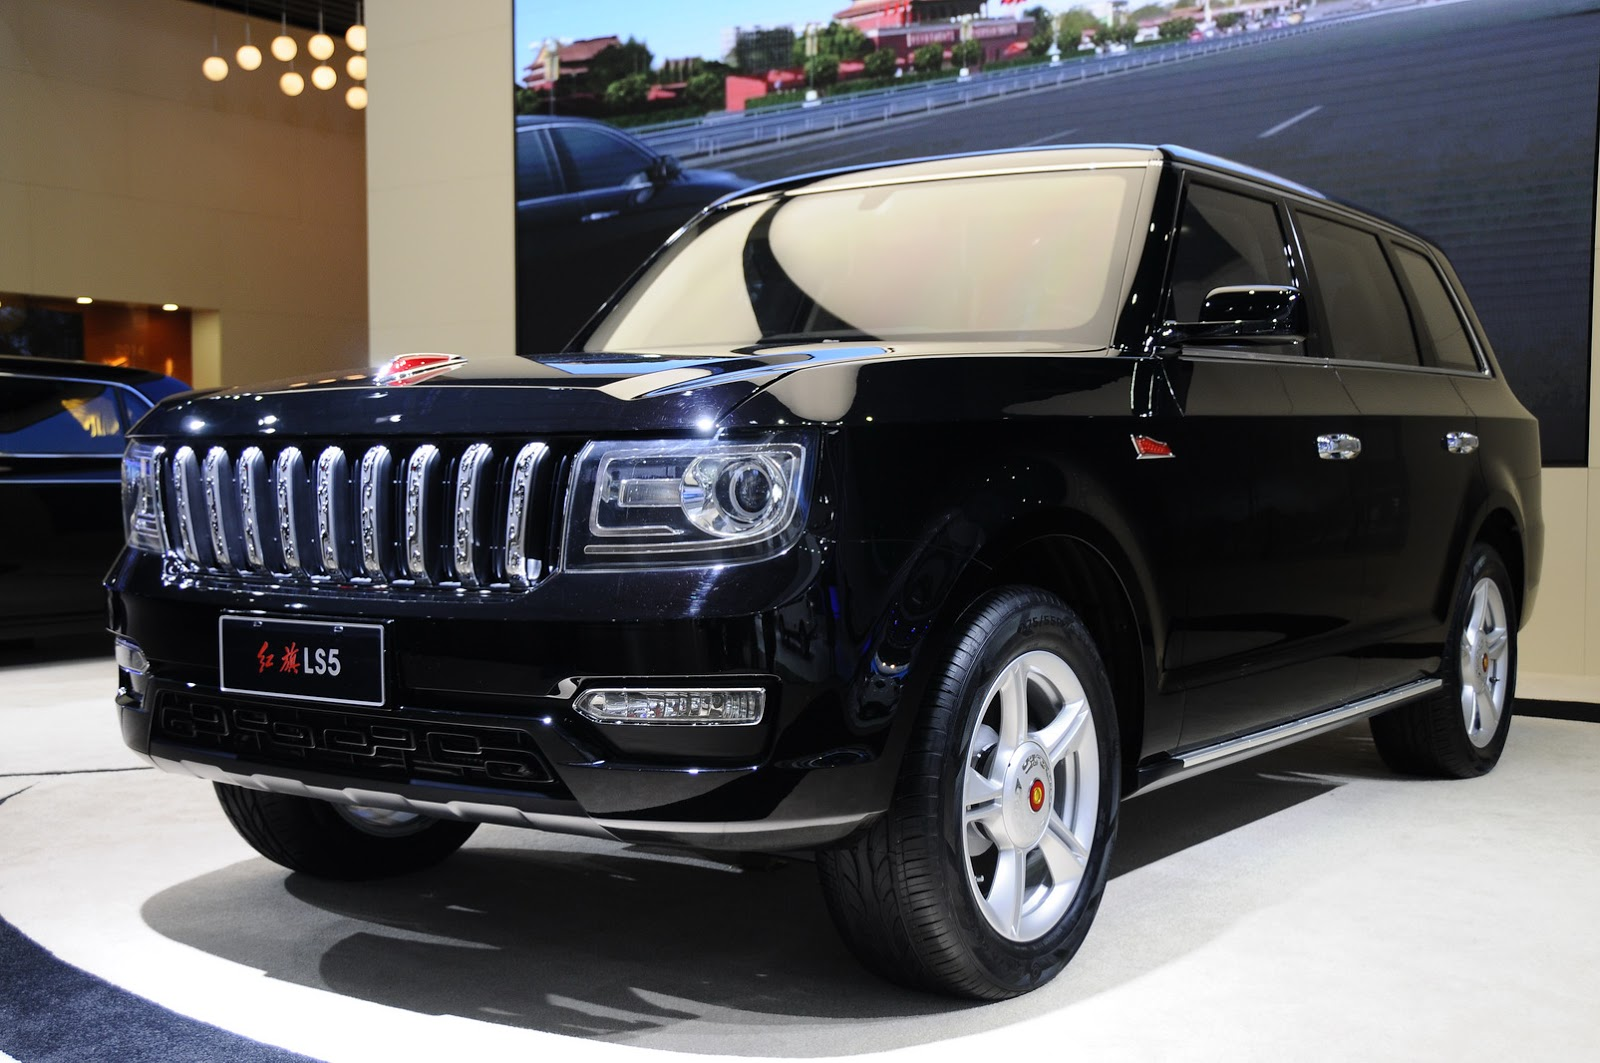 hongqi ls5 is something like china 39 s range rover for the rich carscoops. Black Bedroom Furniture Sets. Home Design Ideas